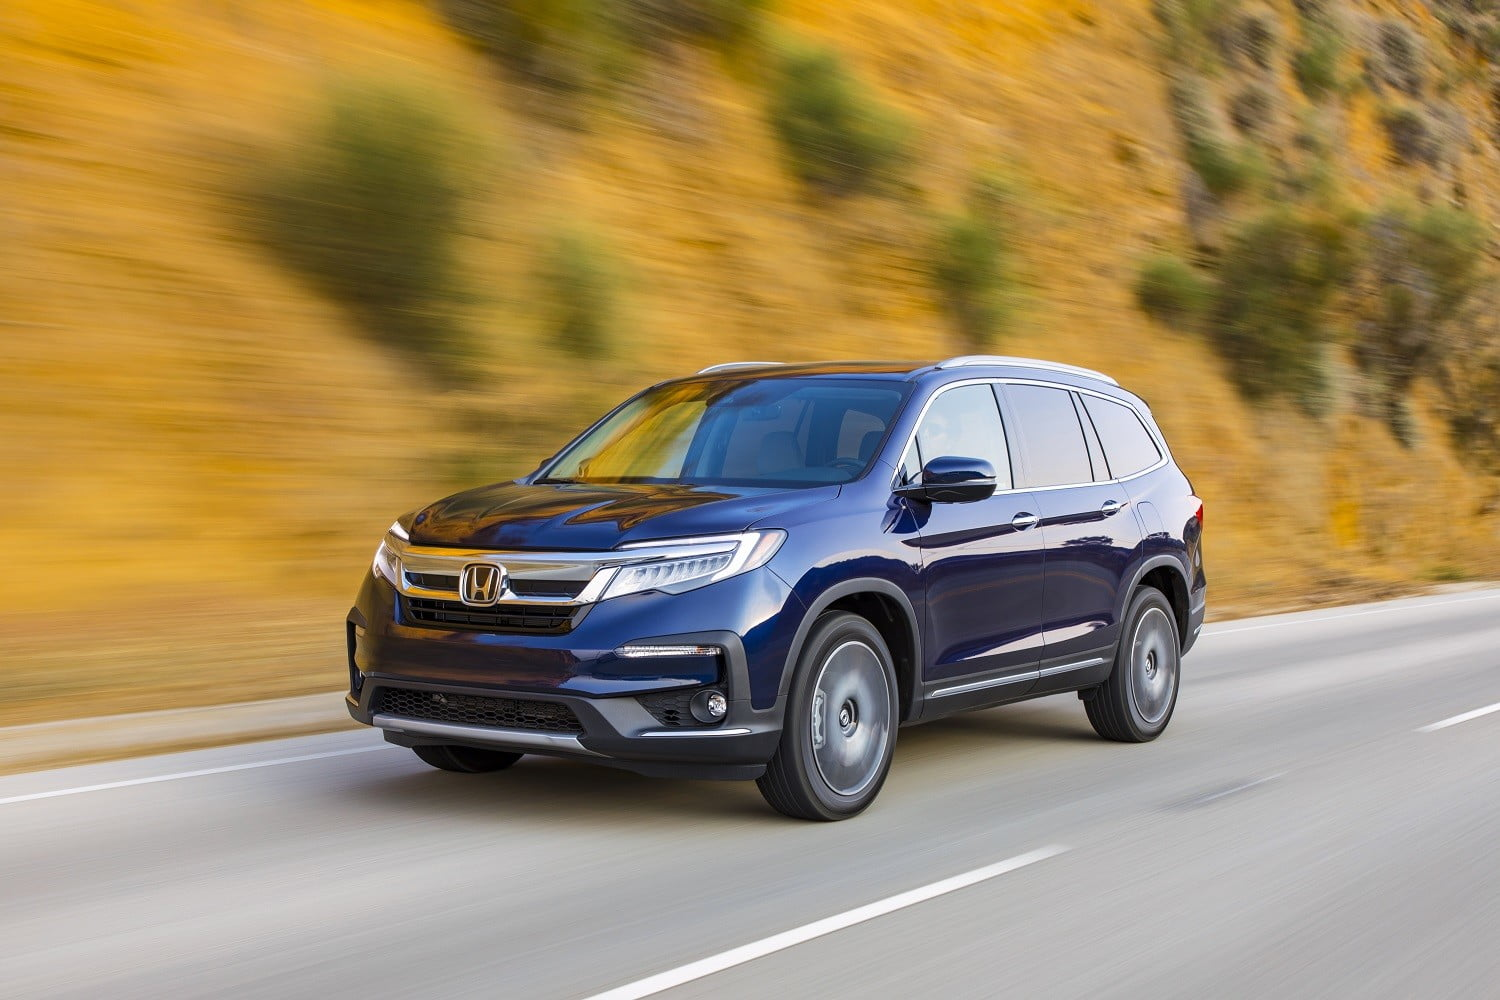 Honda Pilot Vs Toyota Highlander 2019 Elite